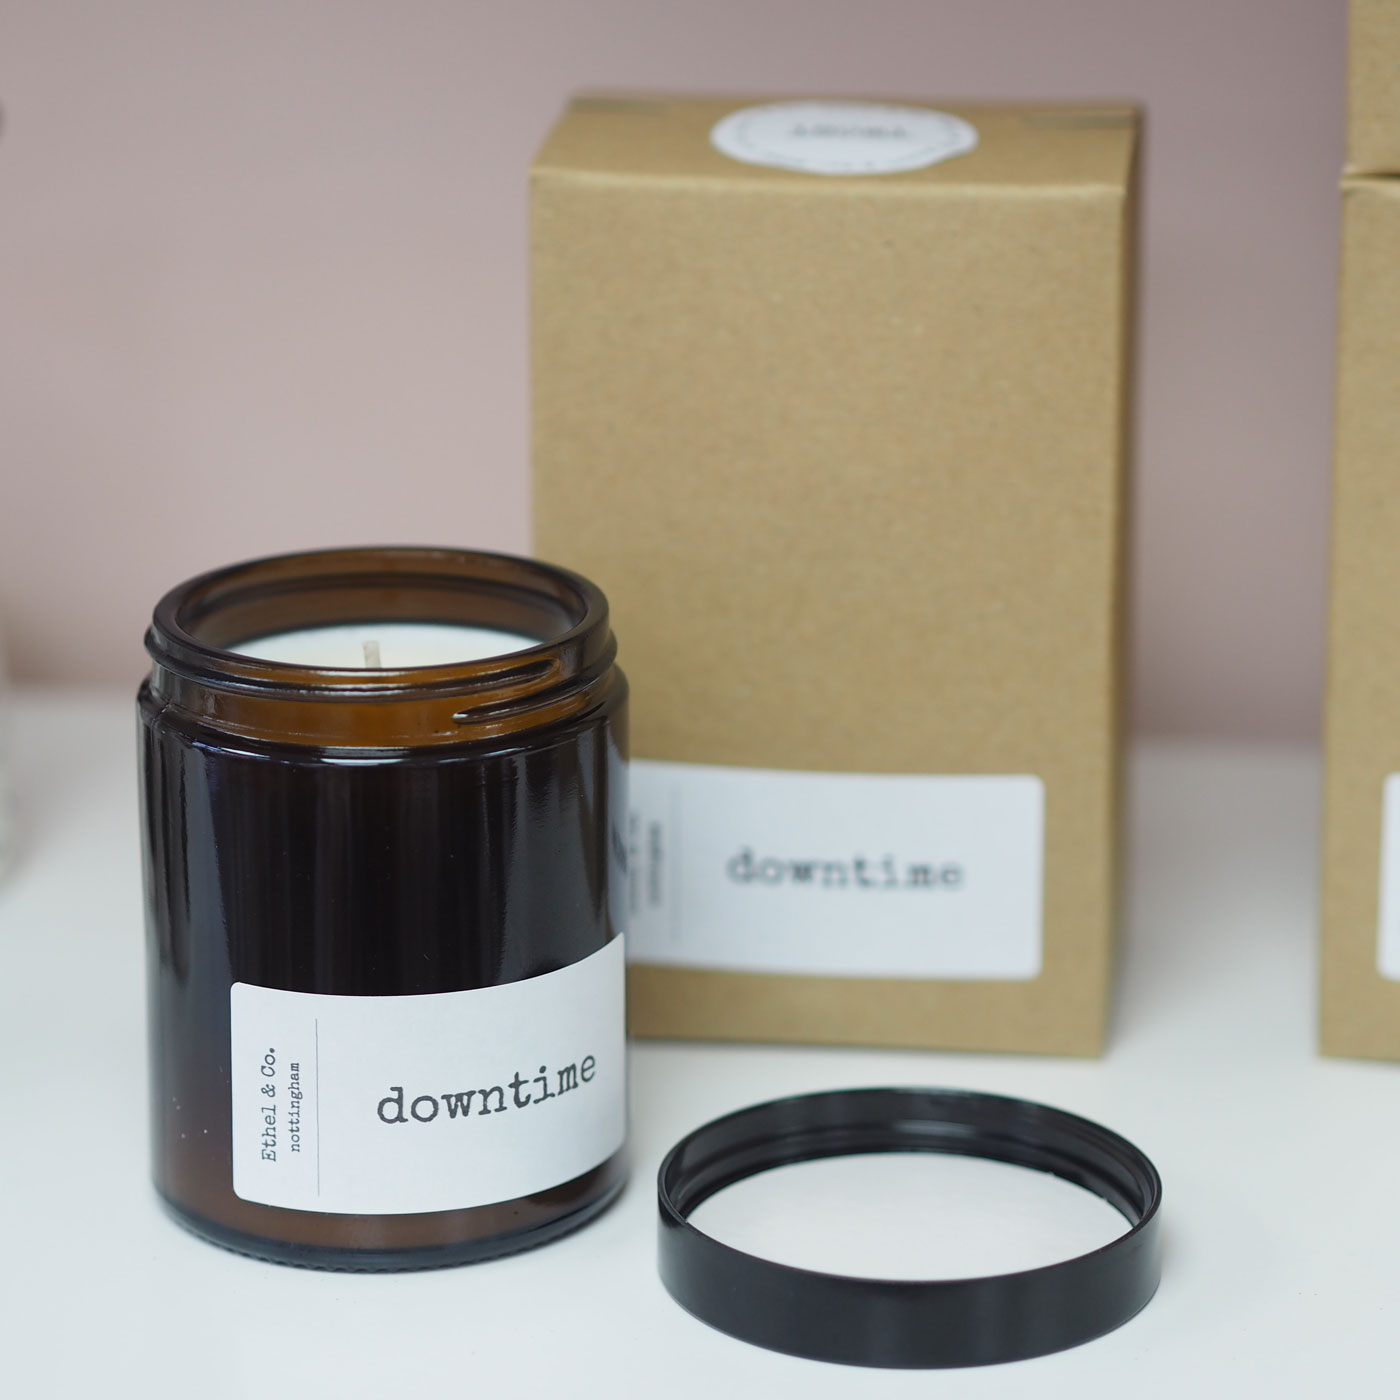 Downtime Candle - Eucalyptus & Peppermint